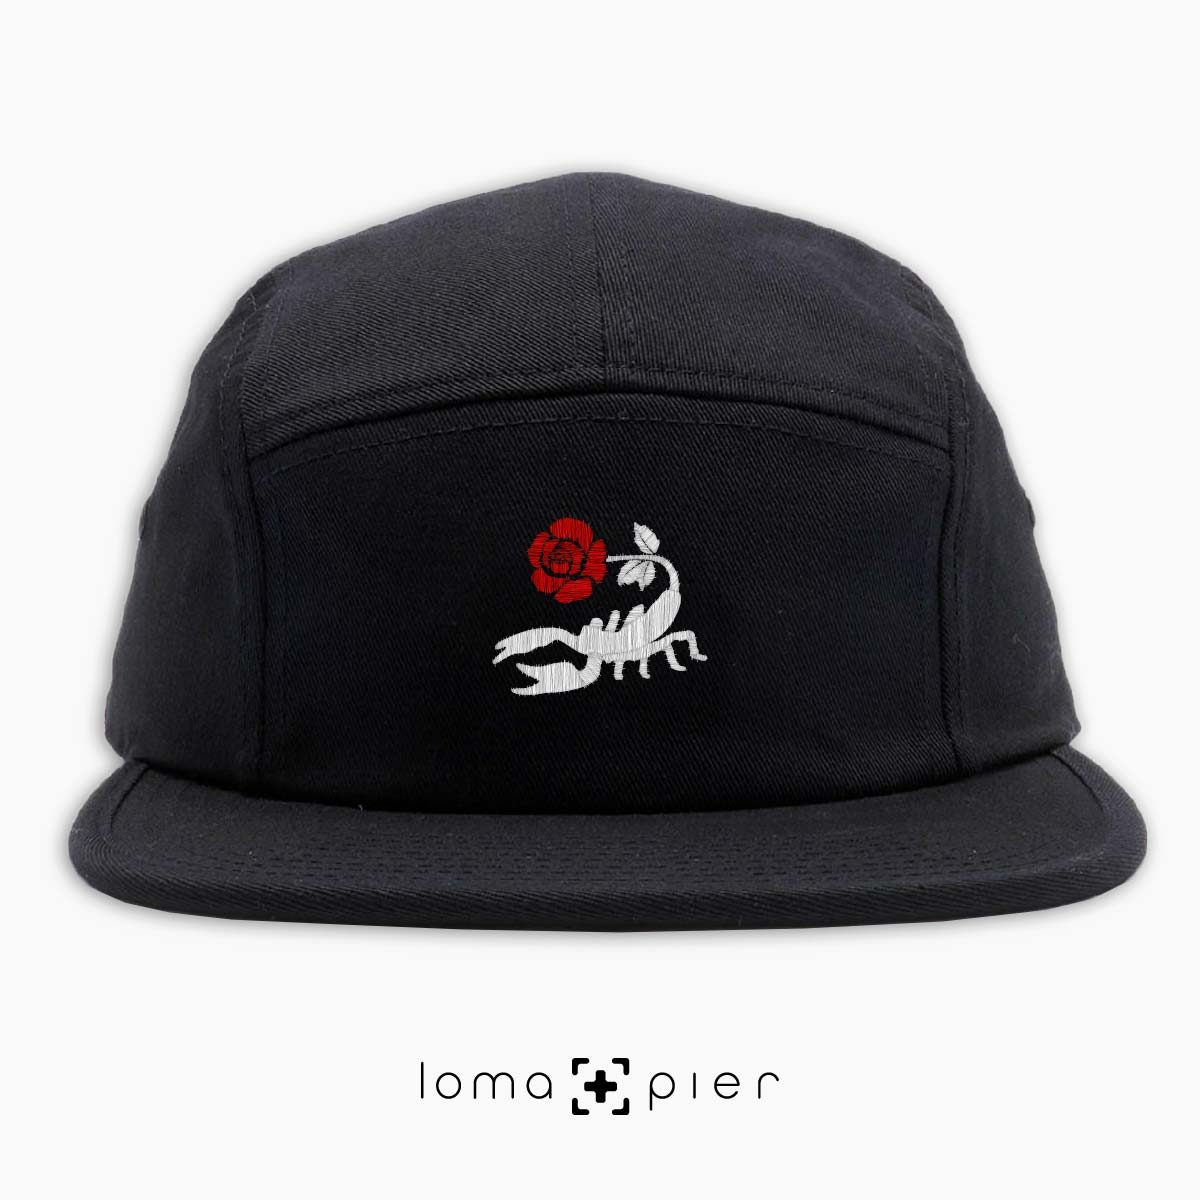 SCORPION ROSE icon embroidered on a black cotton 5-panel hat with multicolor thread in the loma+pier hat store